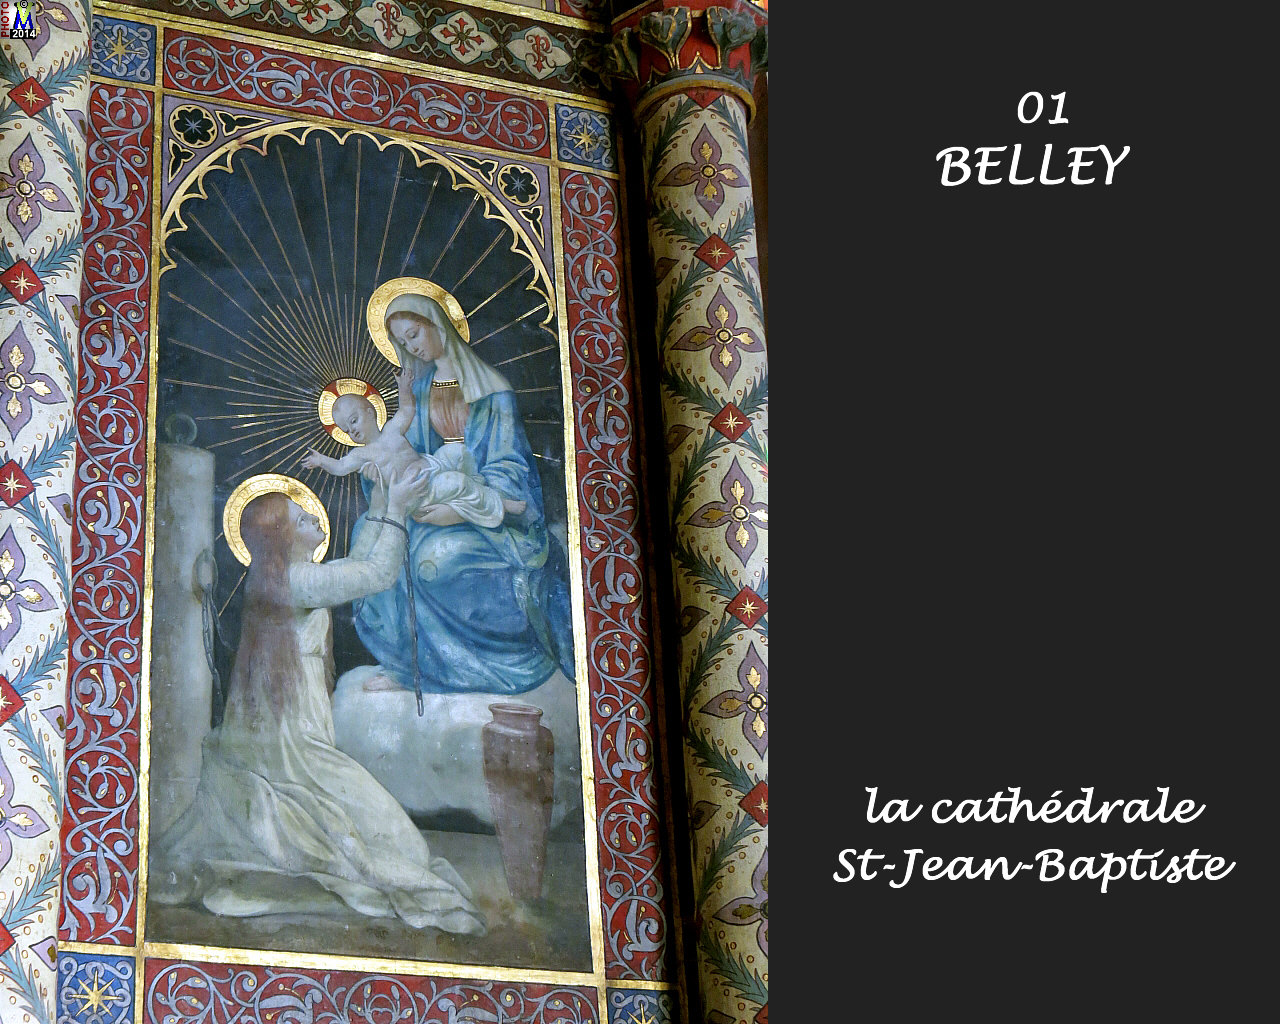 01BELLEY_cathedrale_246.jpg